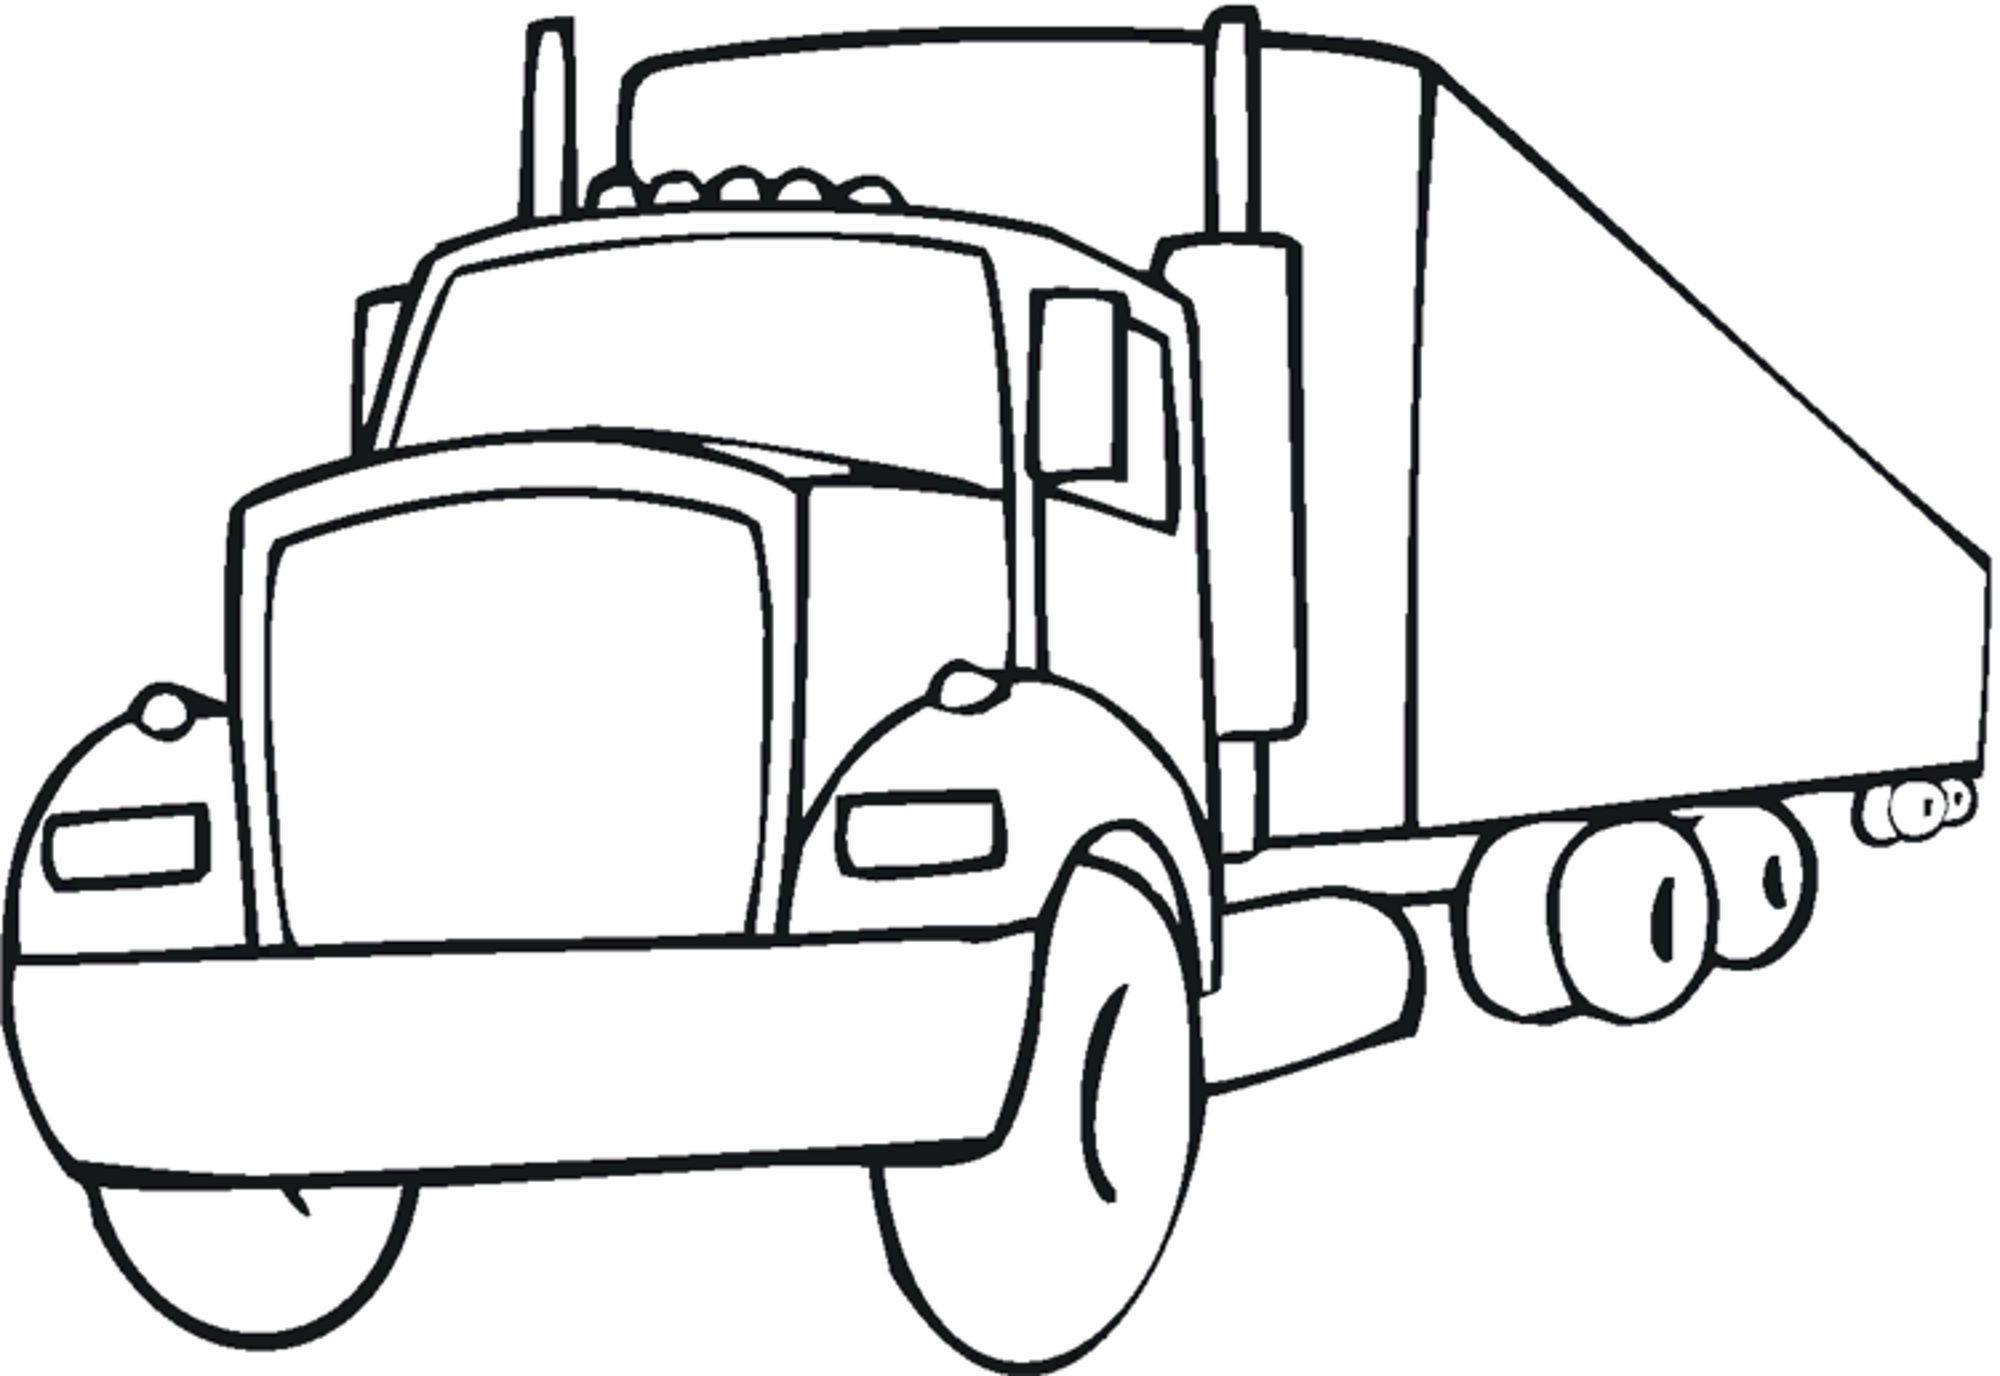 Easy Little Kid Coloring Pages Truck Coloring Pages Tractor Coloring Pages Coloring Pages For Boys